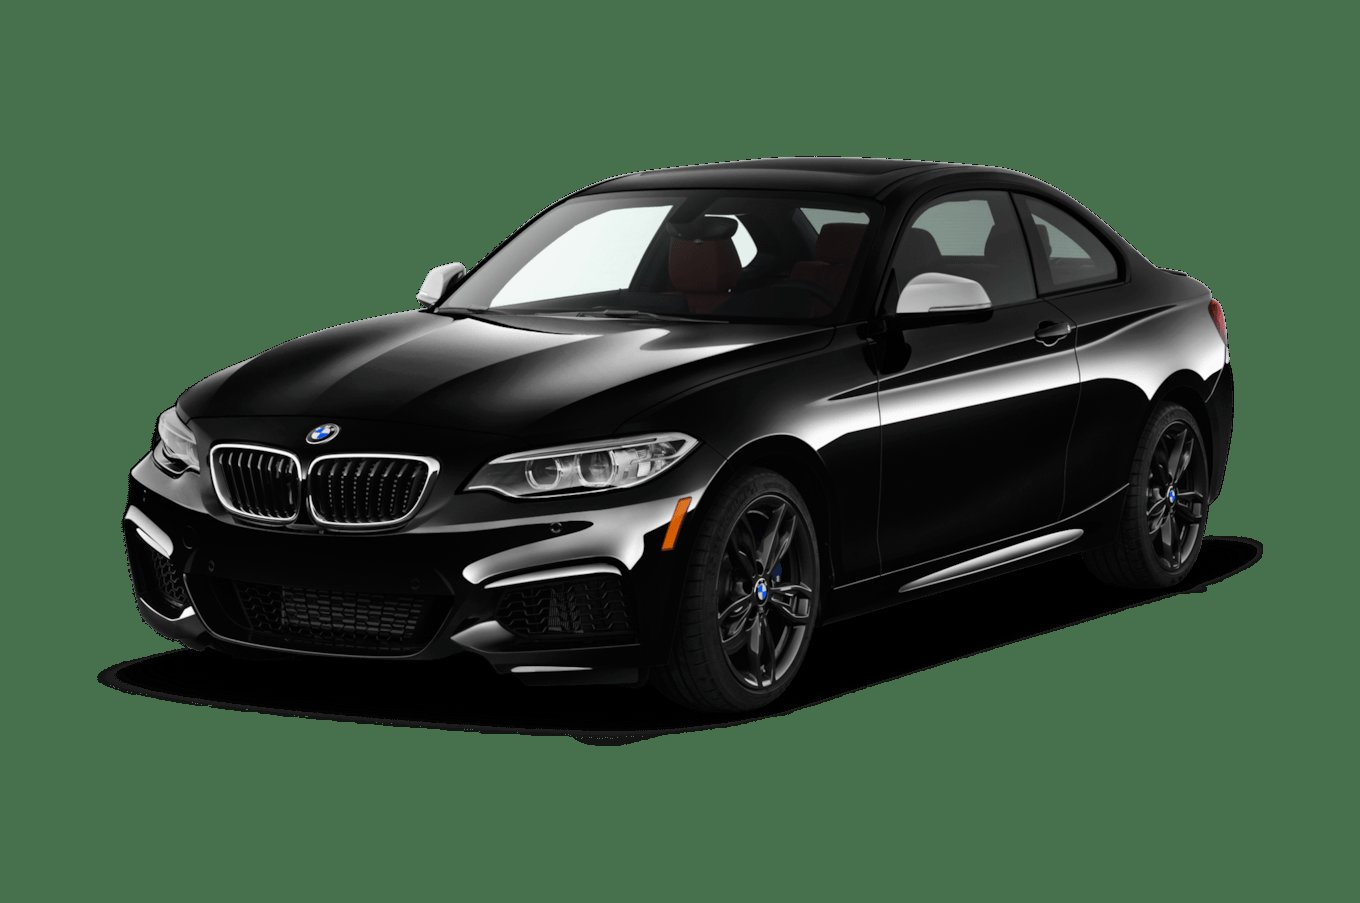 Latest Bmw Cars Convertible Coupe Hatchback Sedan Suv Free Download